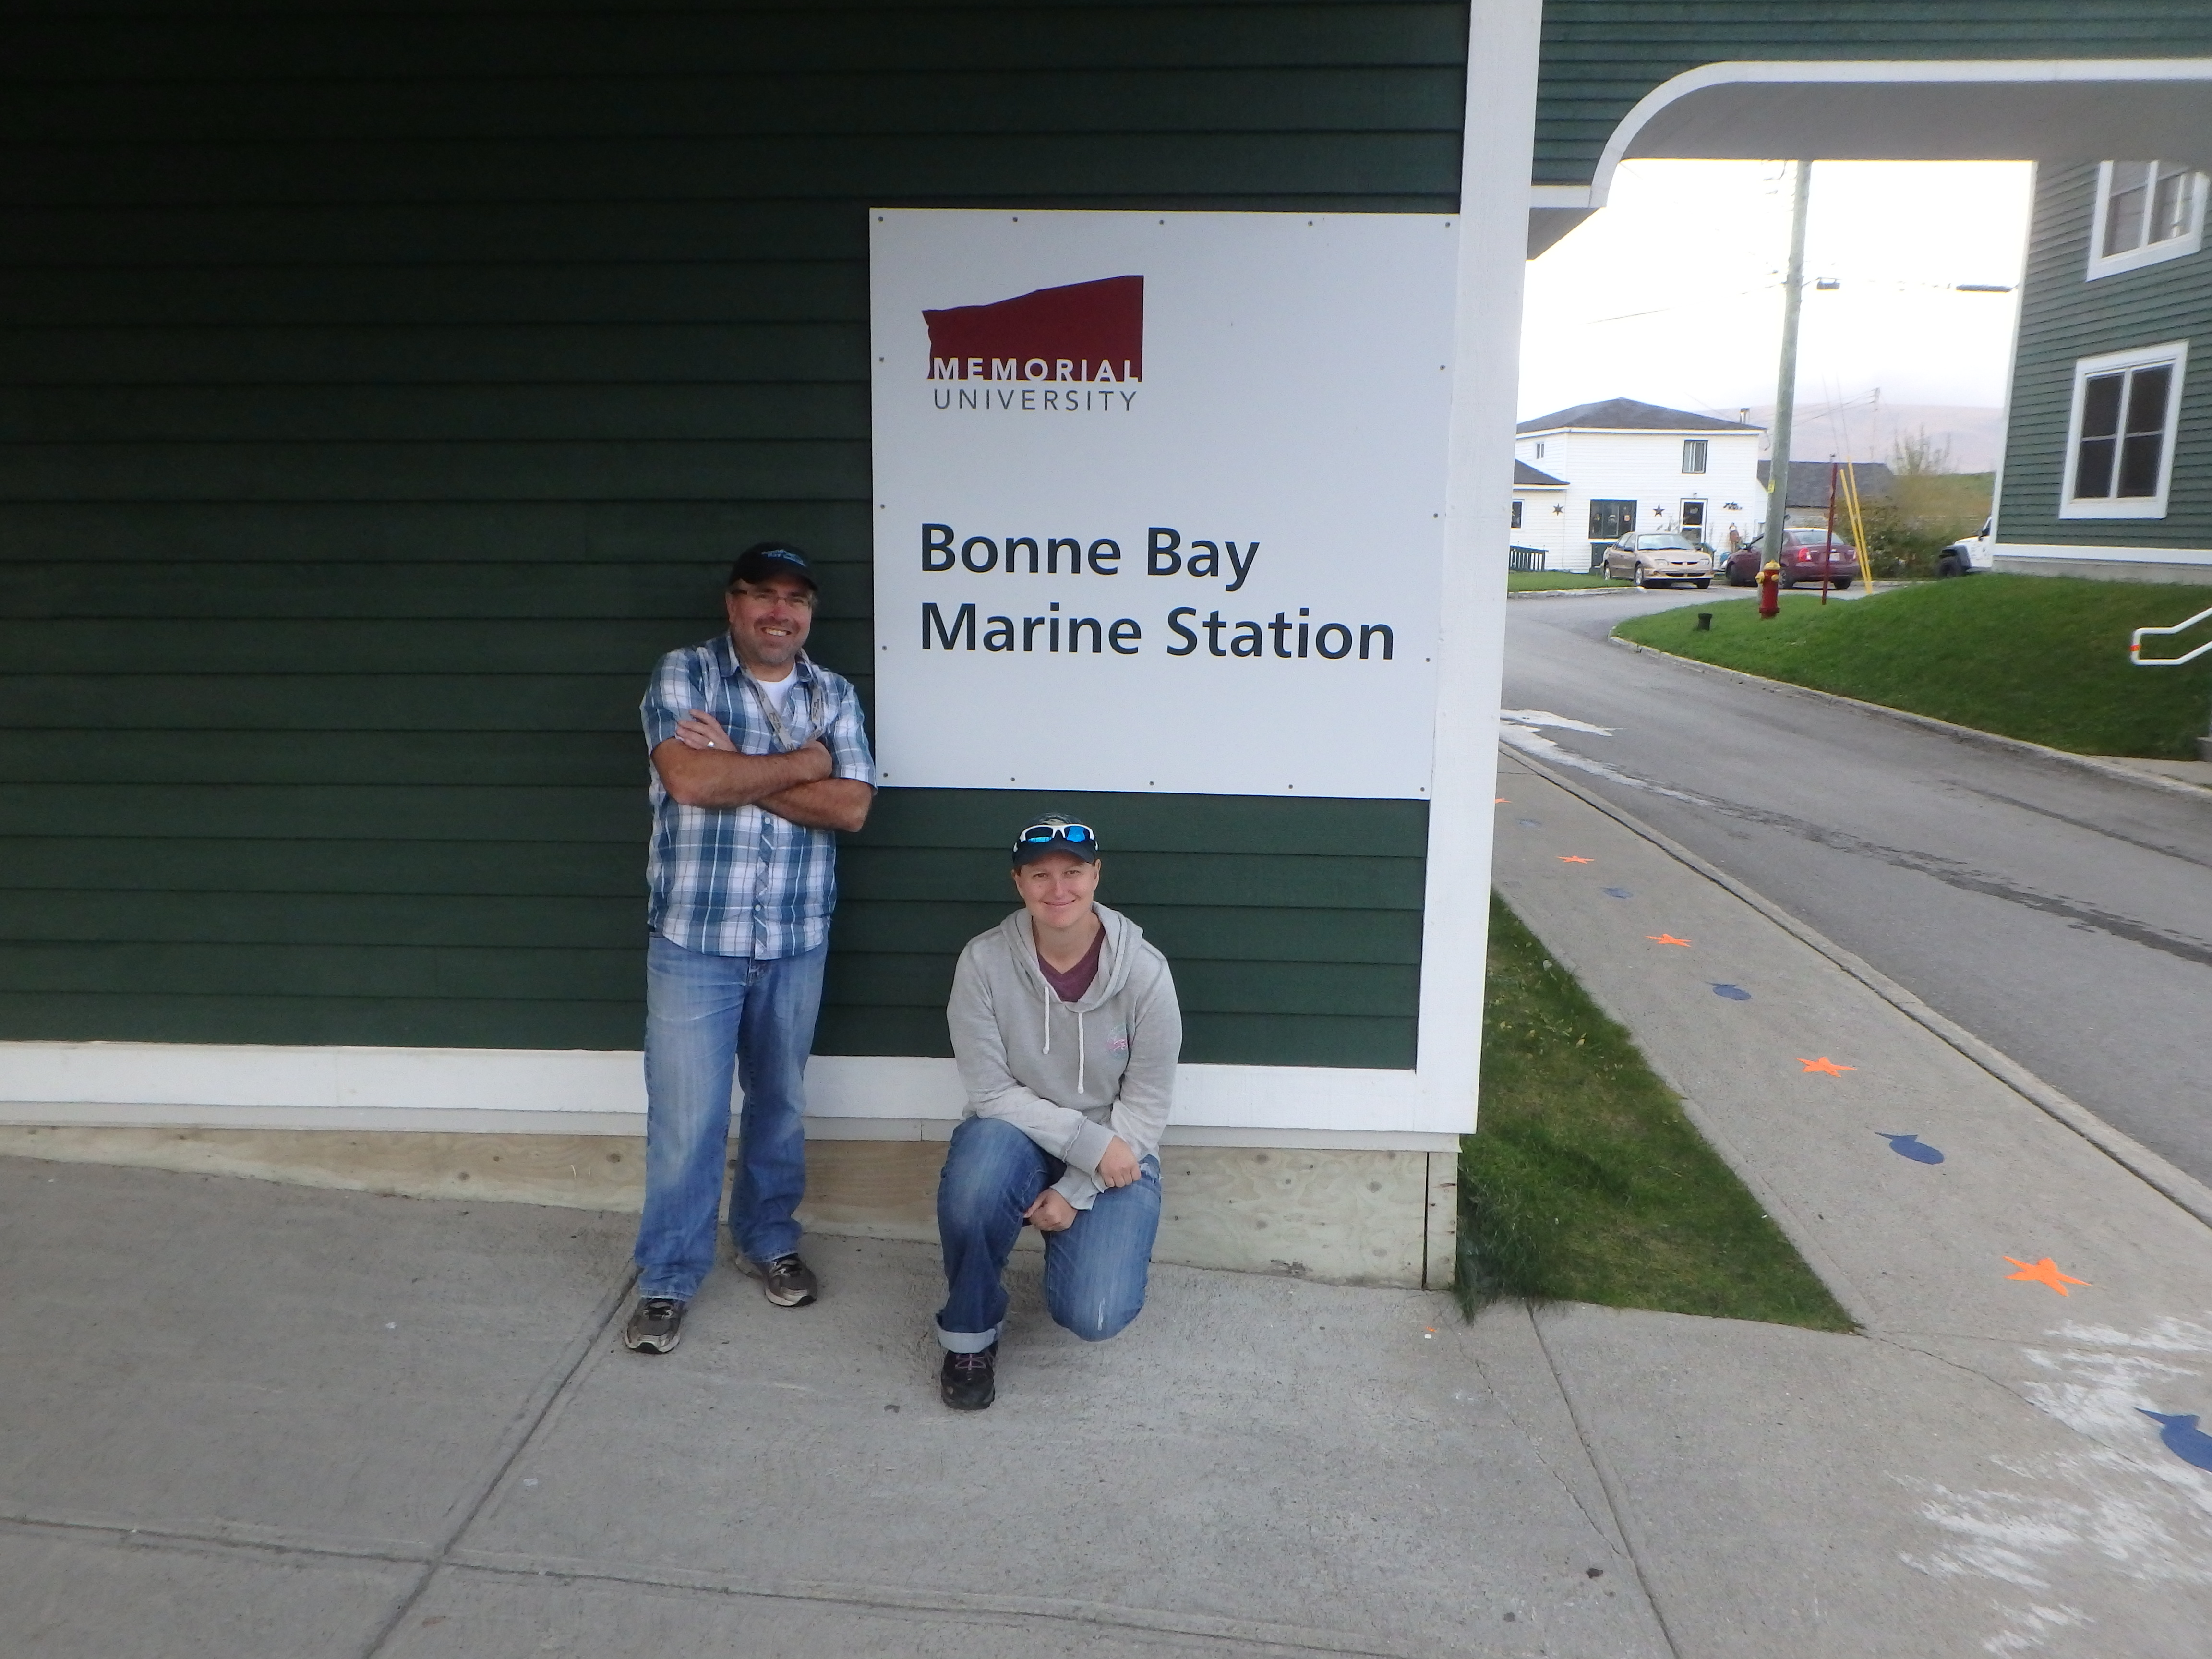 Robert J. Scott & Jessica; Bonne Bay Marine Station, Newfoundland; 2015